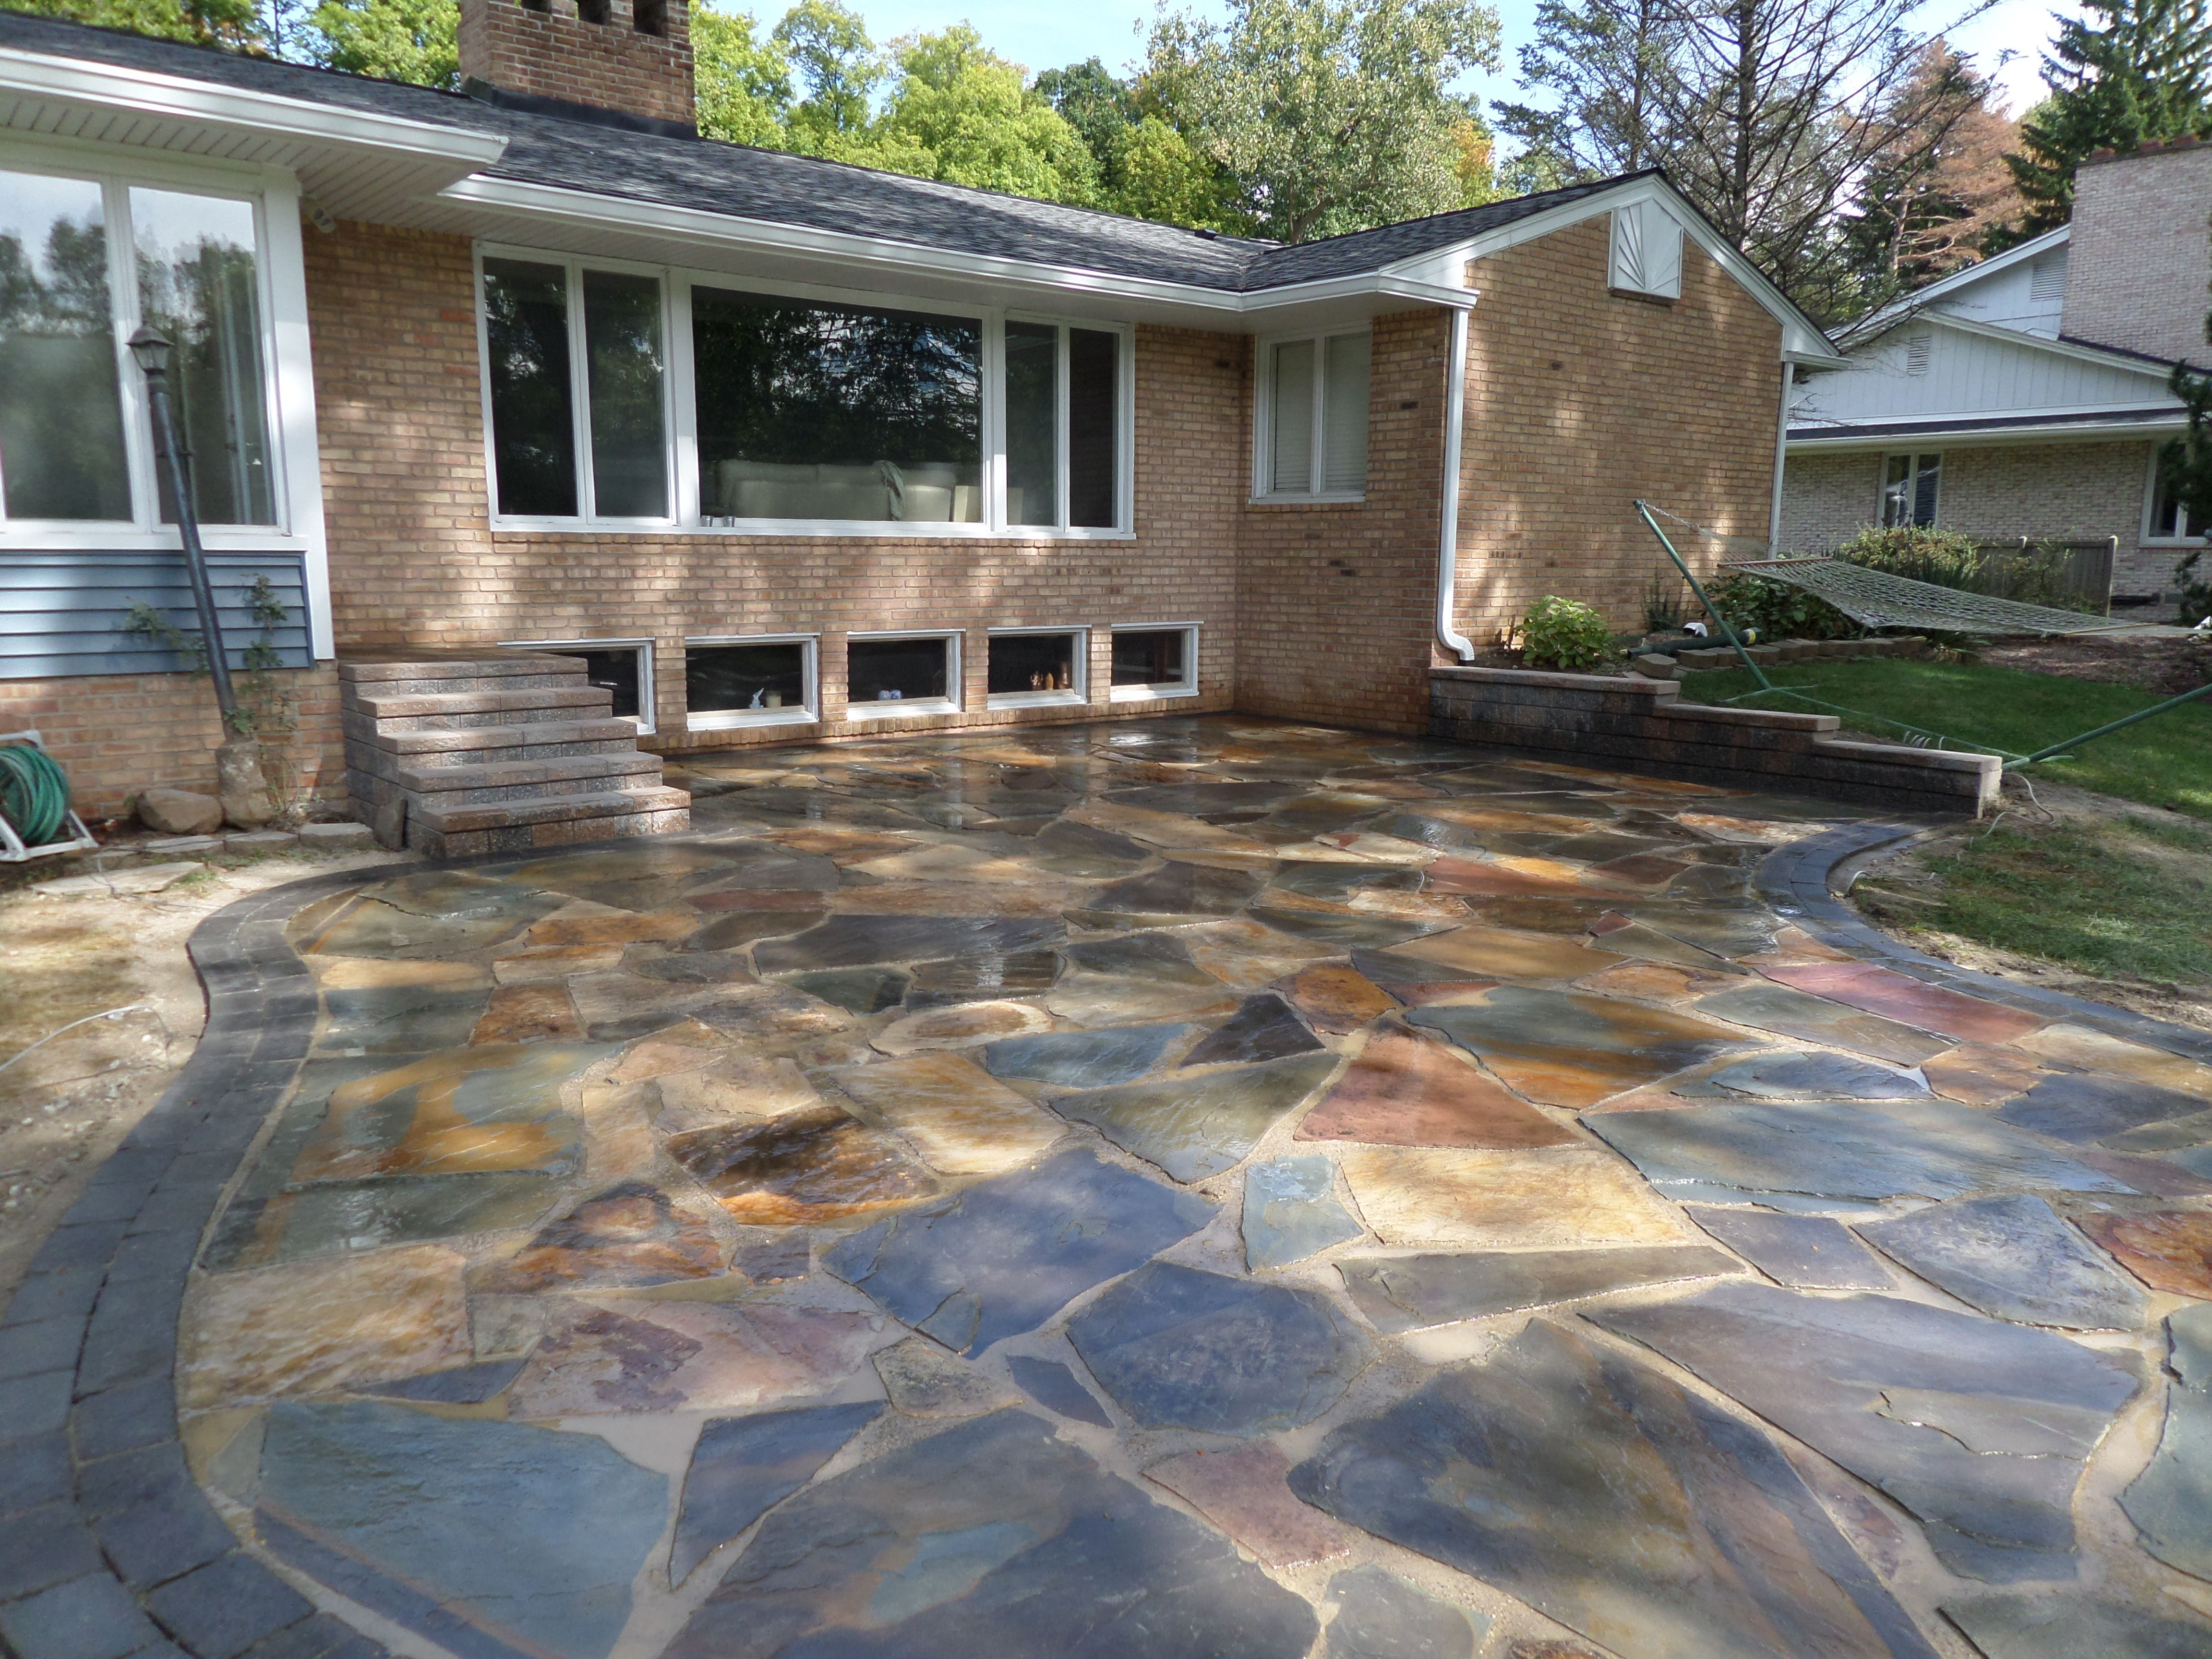 Merveilleux Natural Stone Patio. New York Flagstone With A Oaks Colonnade Paver Border.  Exquisitehardscapes.